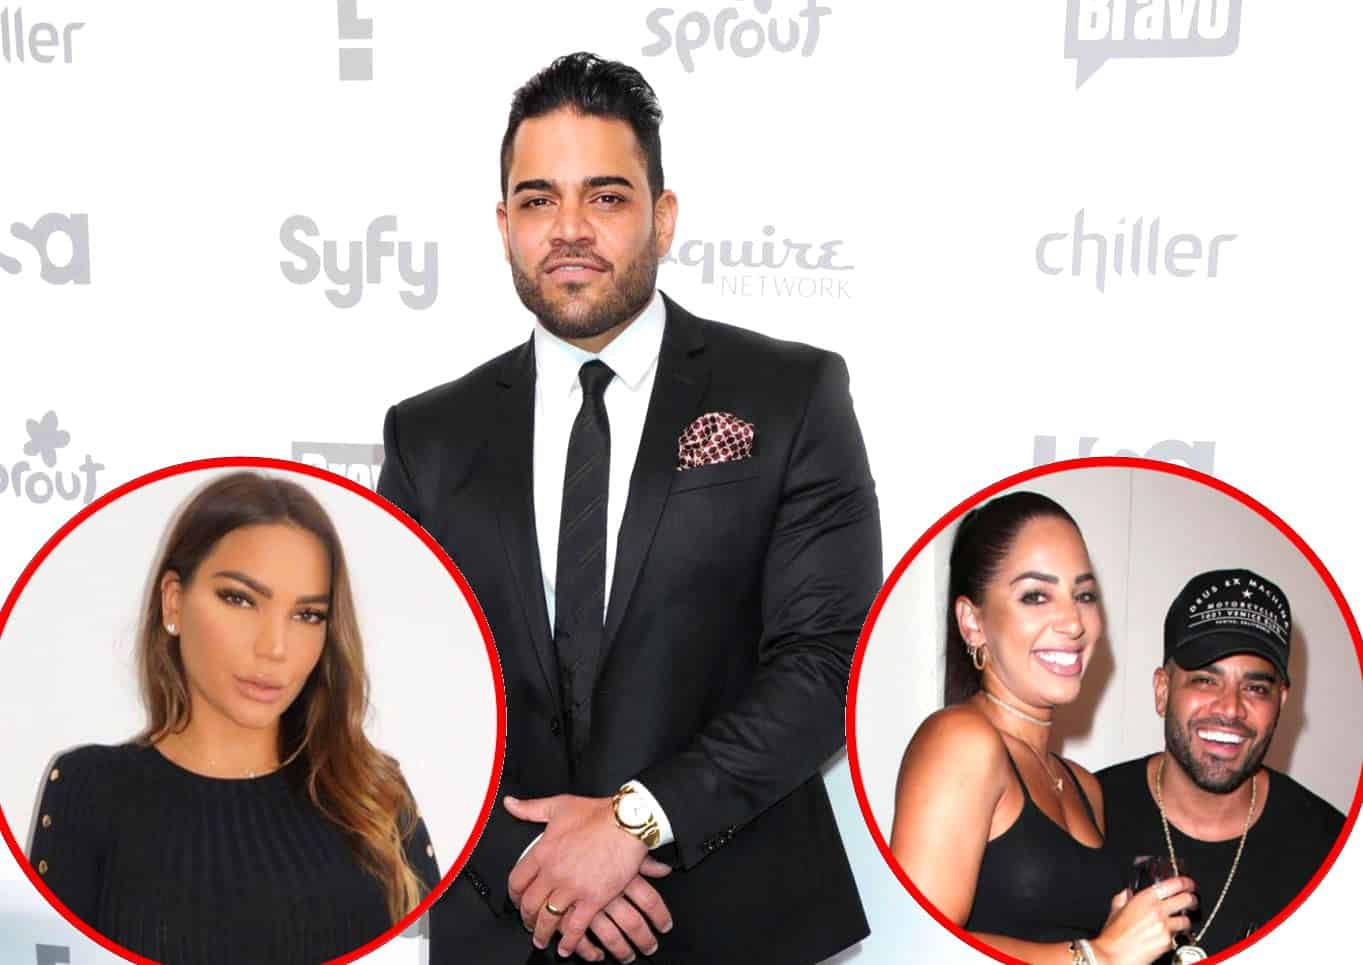 EXCLUSIVE: Shahs of Sunset's Mike Shouhed Reveals if He Still Talks to Ex-Wife Jessica Parido, Talks New Love With Girlfriend Paulina and if He's Open to Getting Married Again, Plus He Shares Update on His Businesses